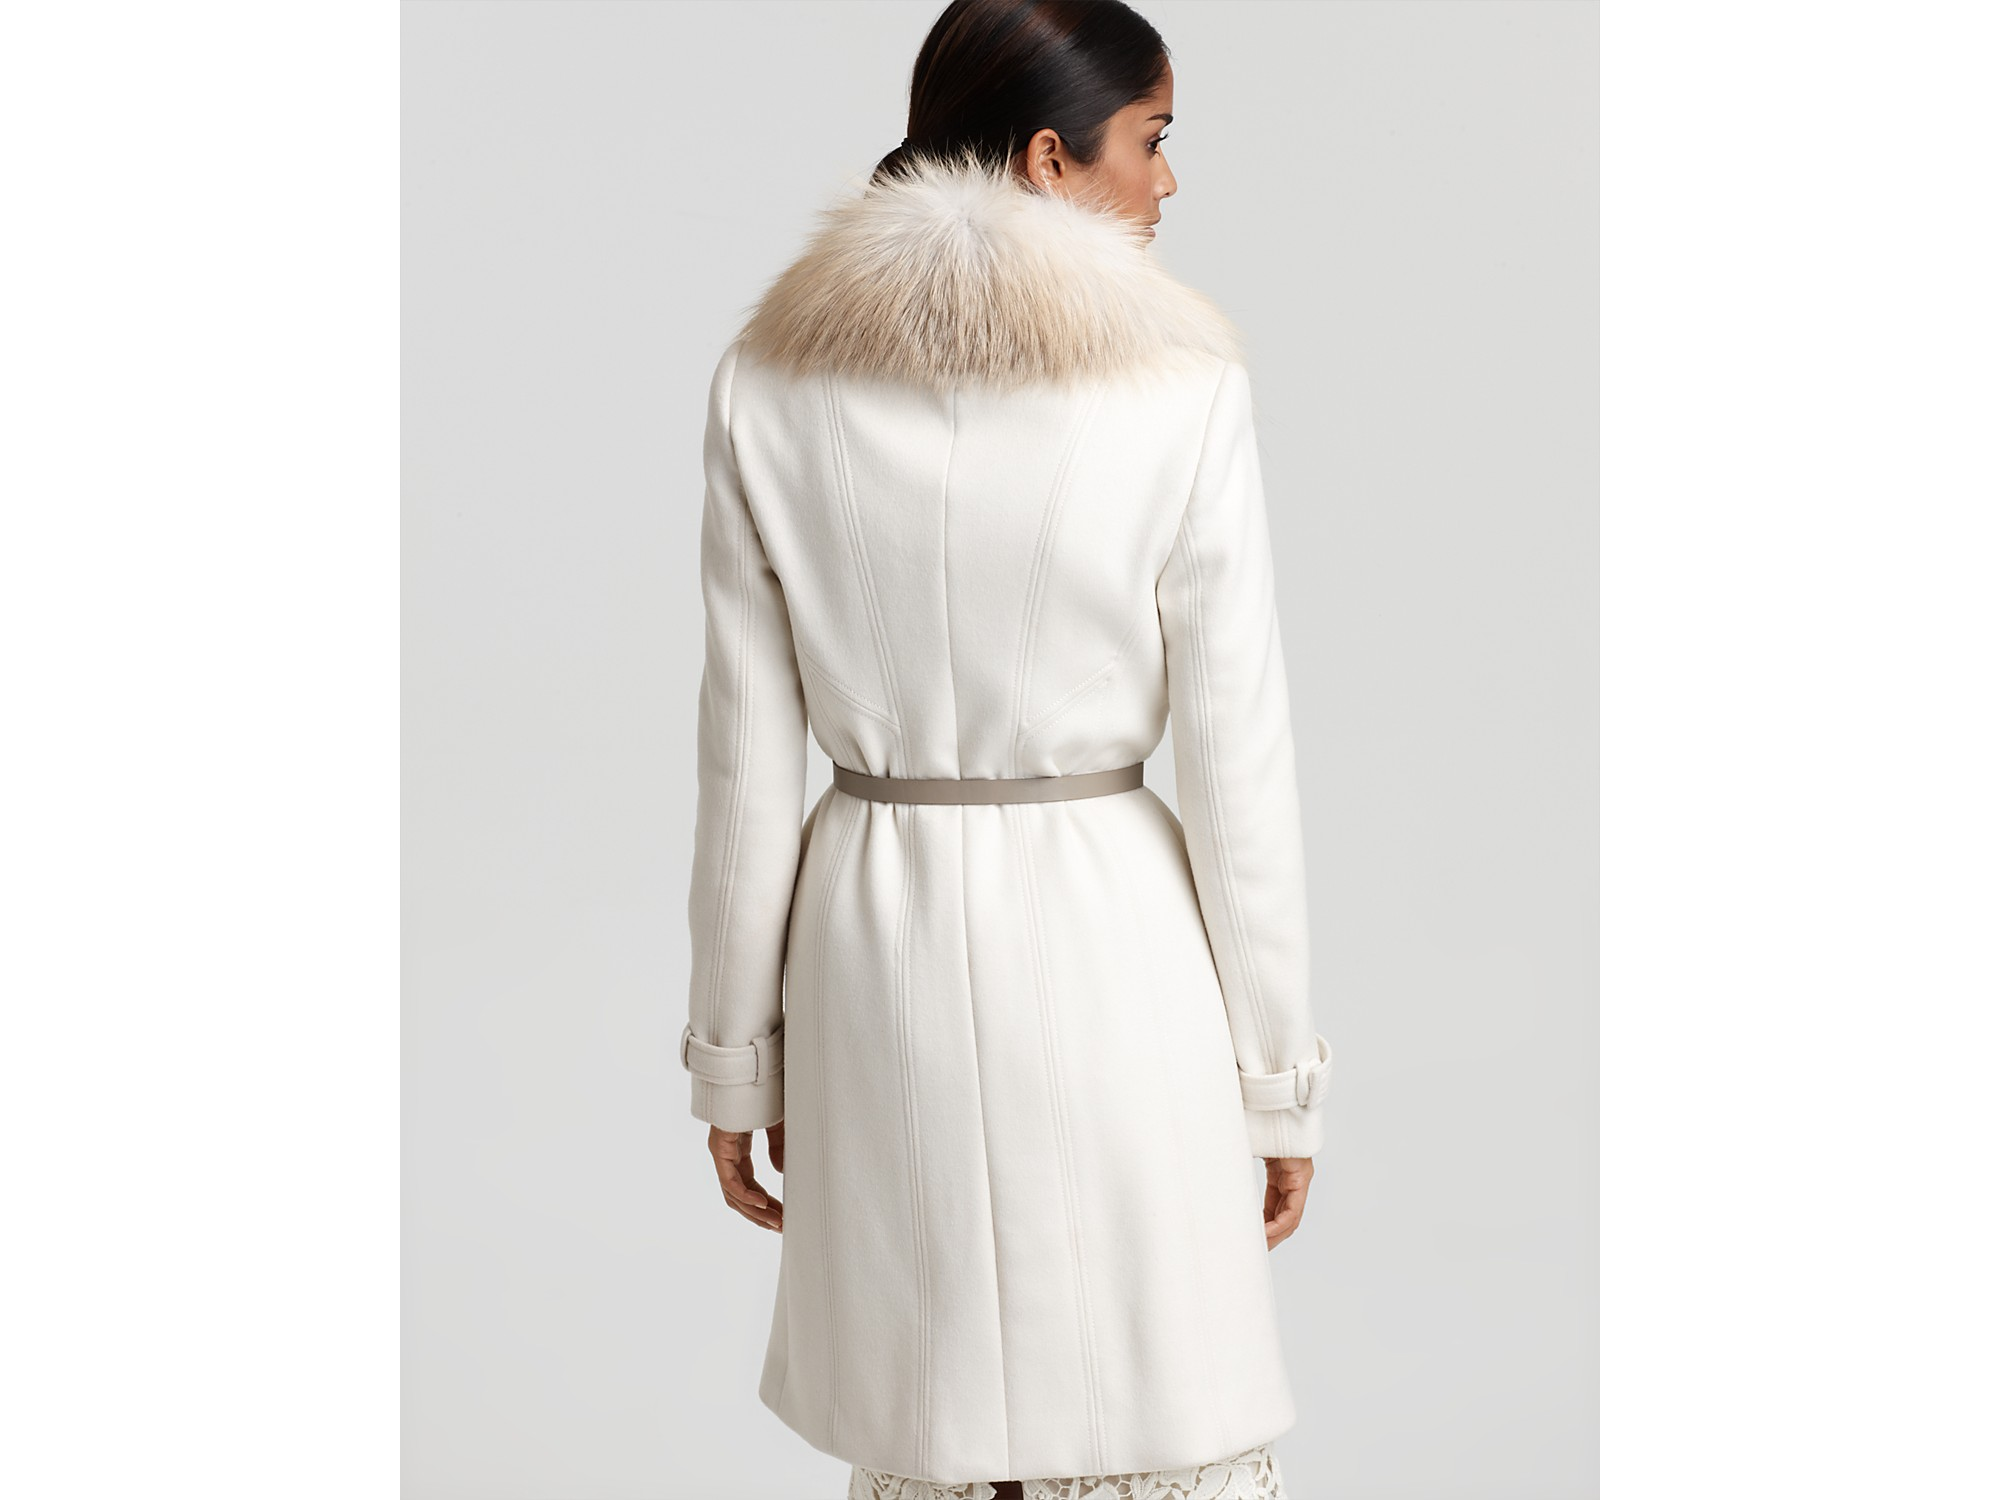 Elie tahari Joanne Wool Coat with Fur Collar and Belt and Bennet ...